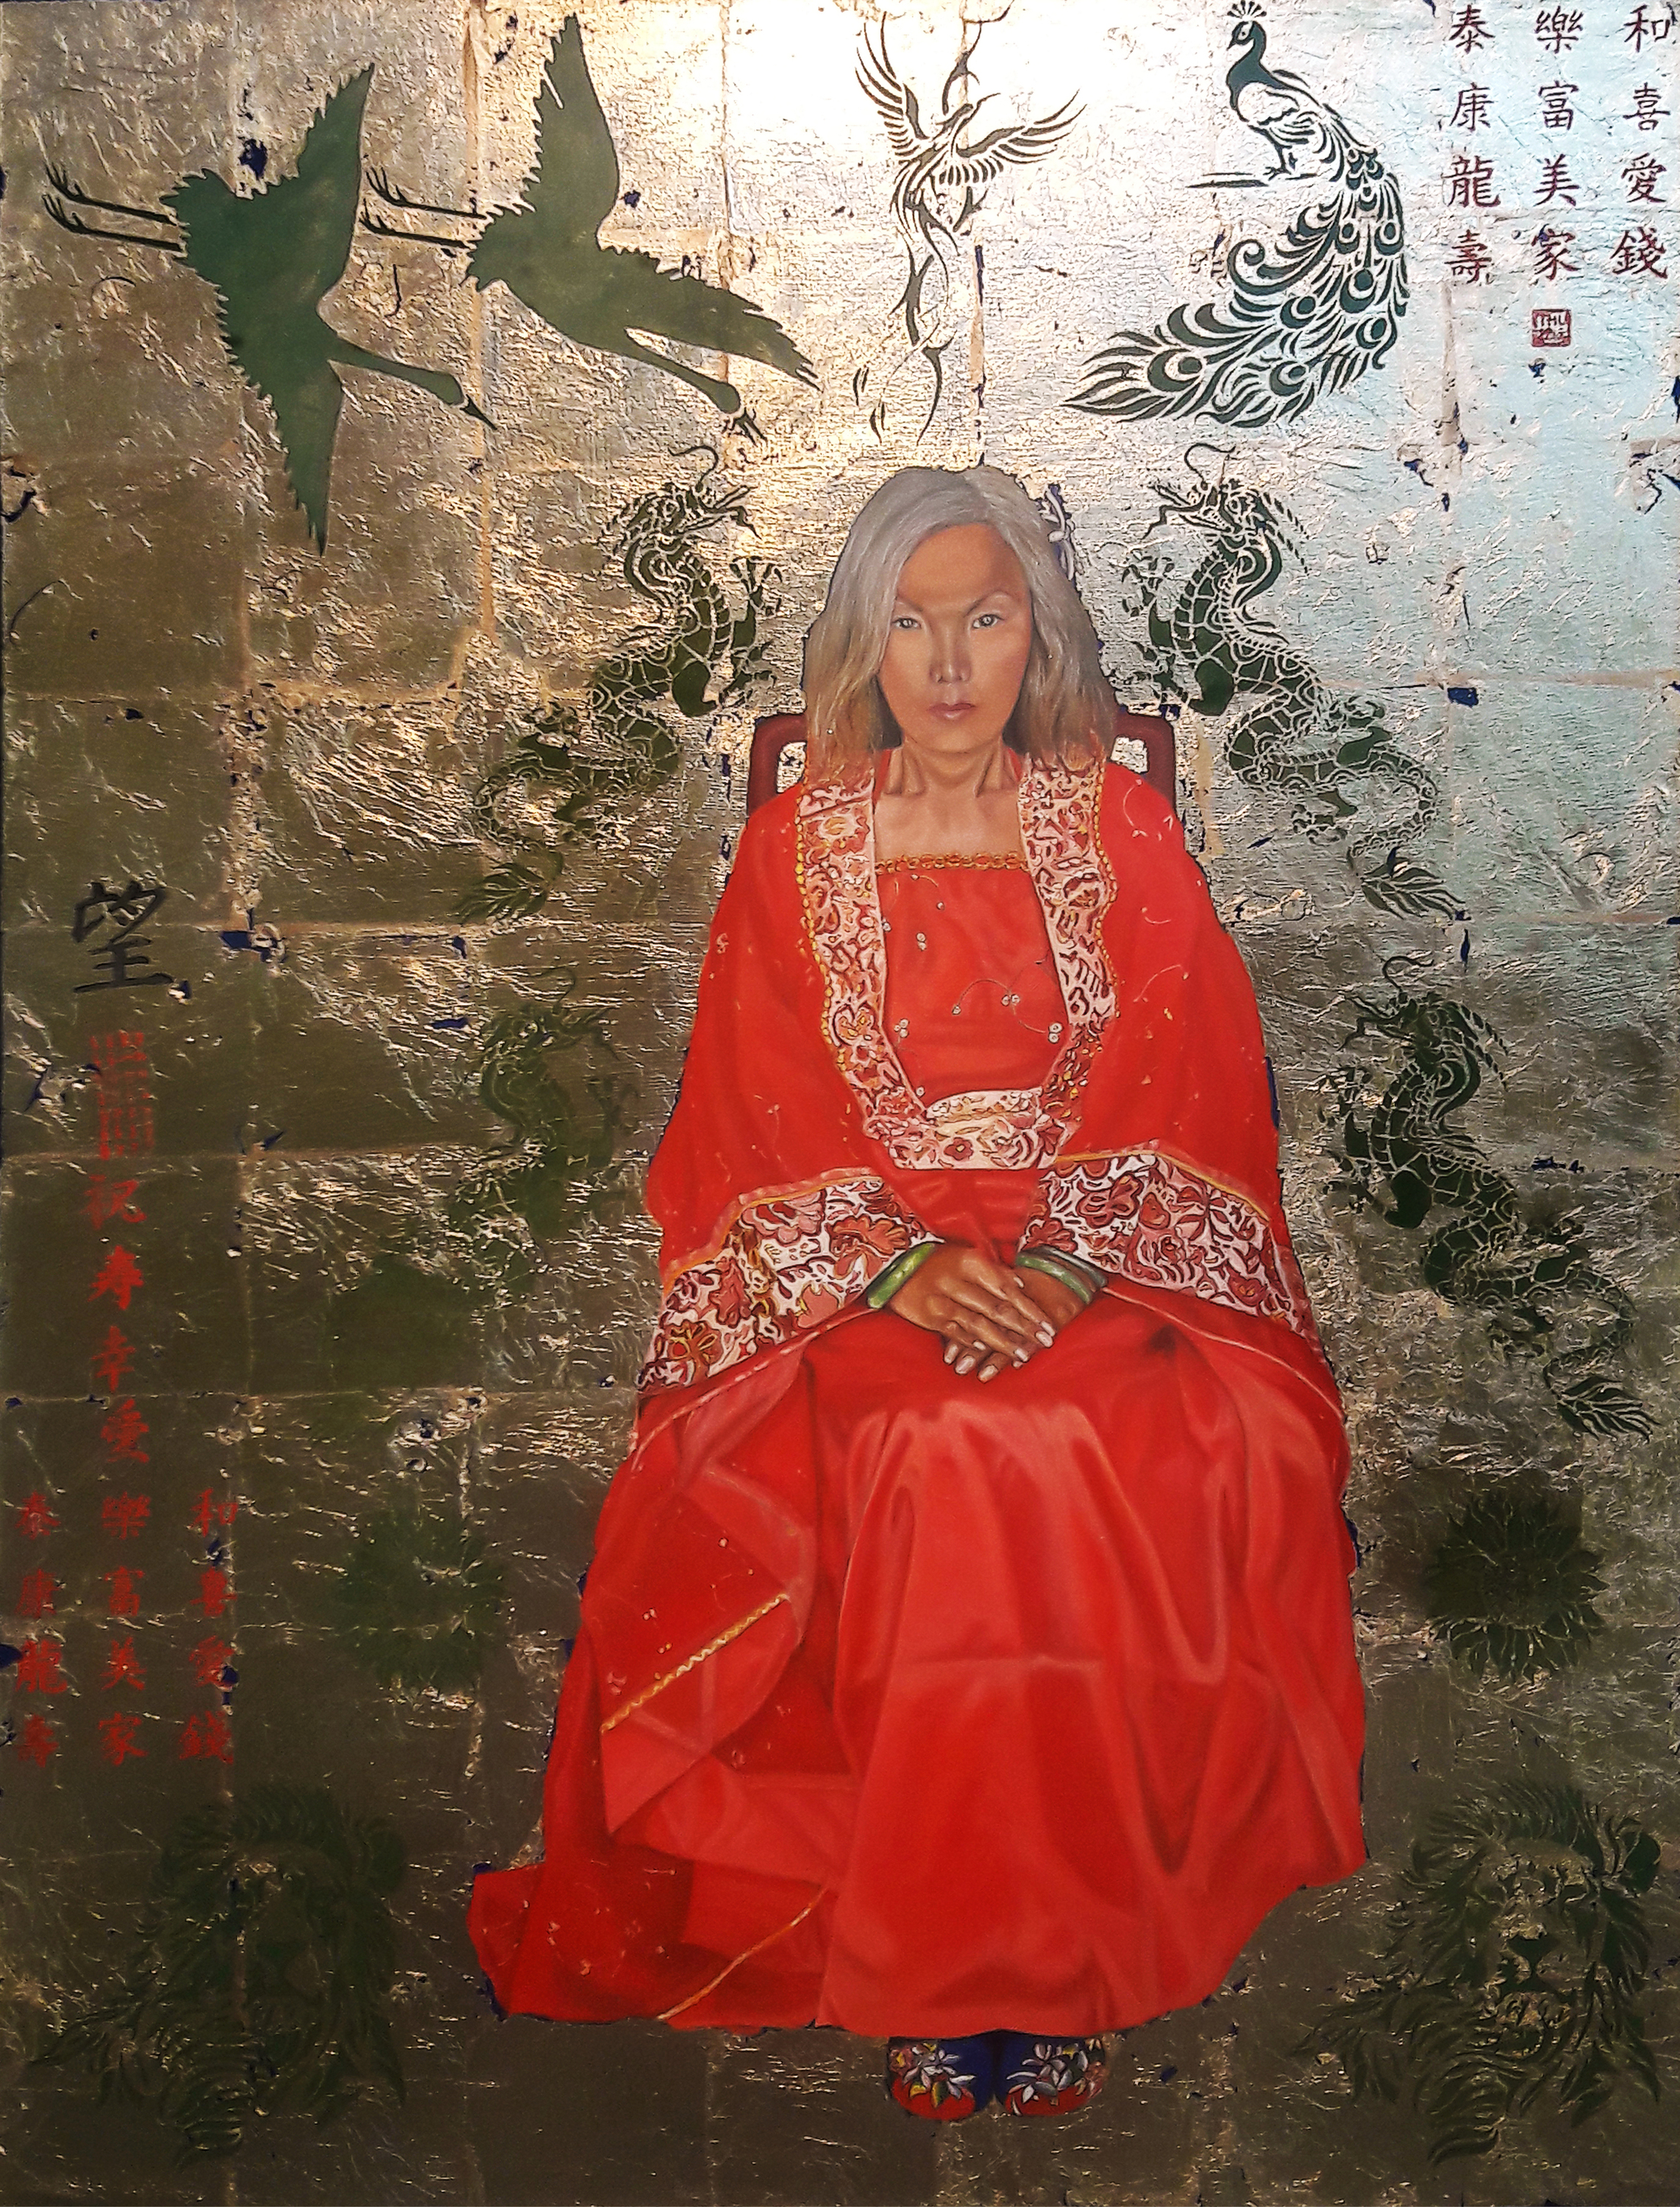 Thu nguyen   the chinese empress   oil with gold leaf skmksz